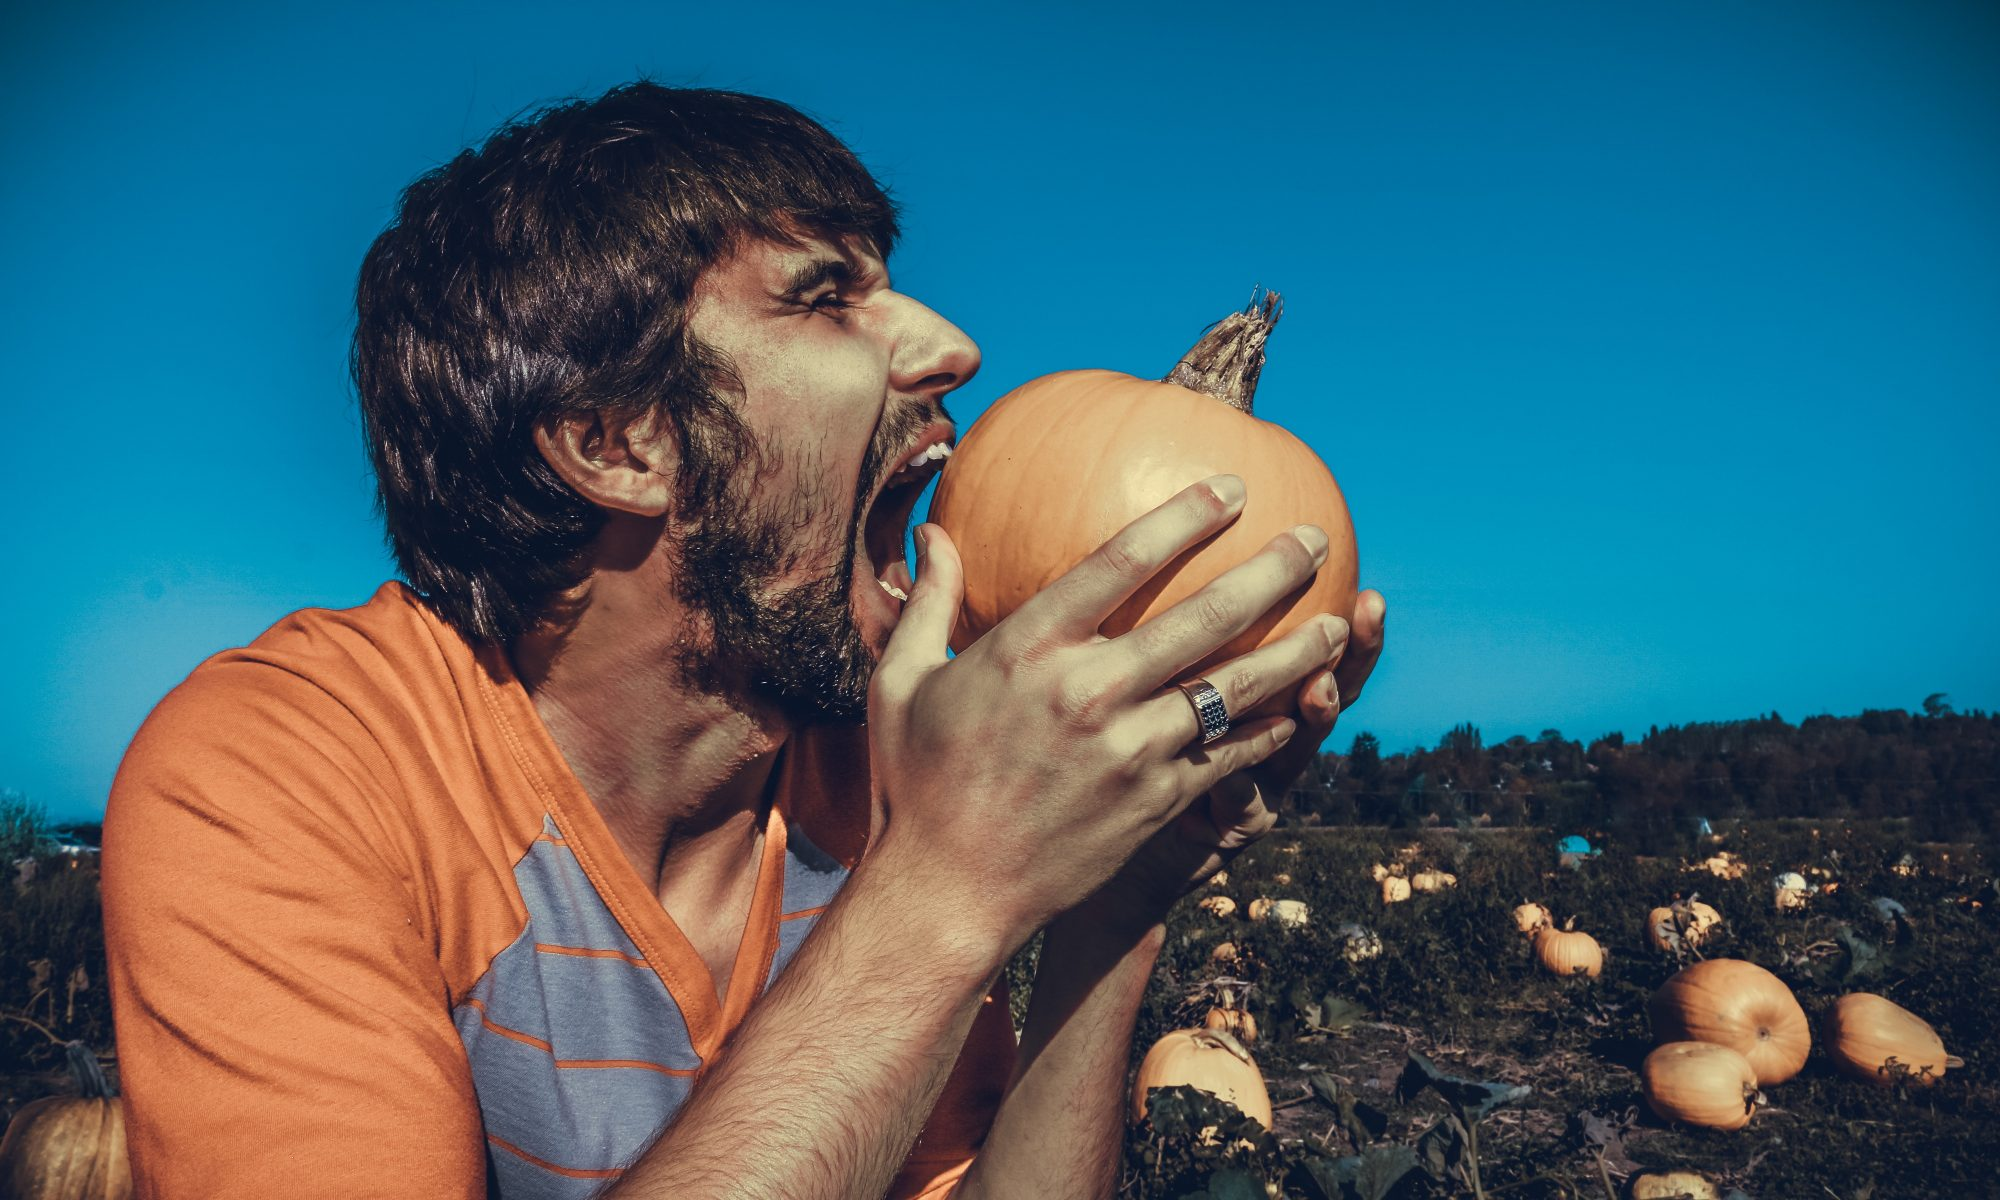 guy biting whole pumpkin in a field